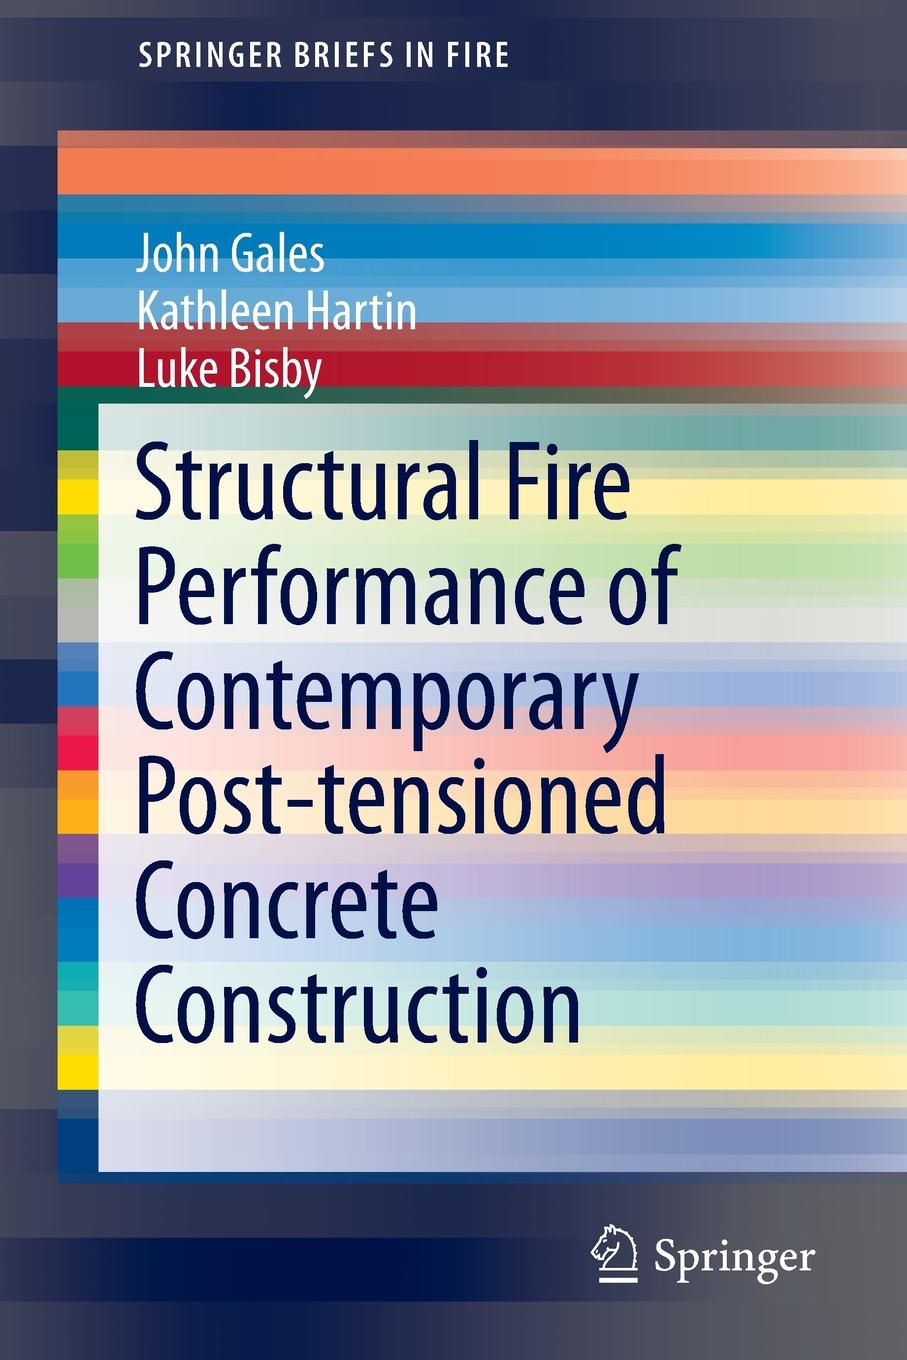 John Gales, Kathleen Hartin, Luke A. Bisby Structural Fire Performance of Contemporary Post-tensioned Concrete Construction